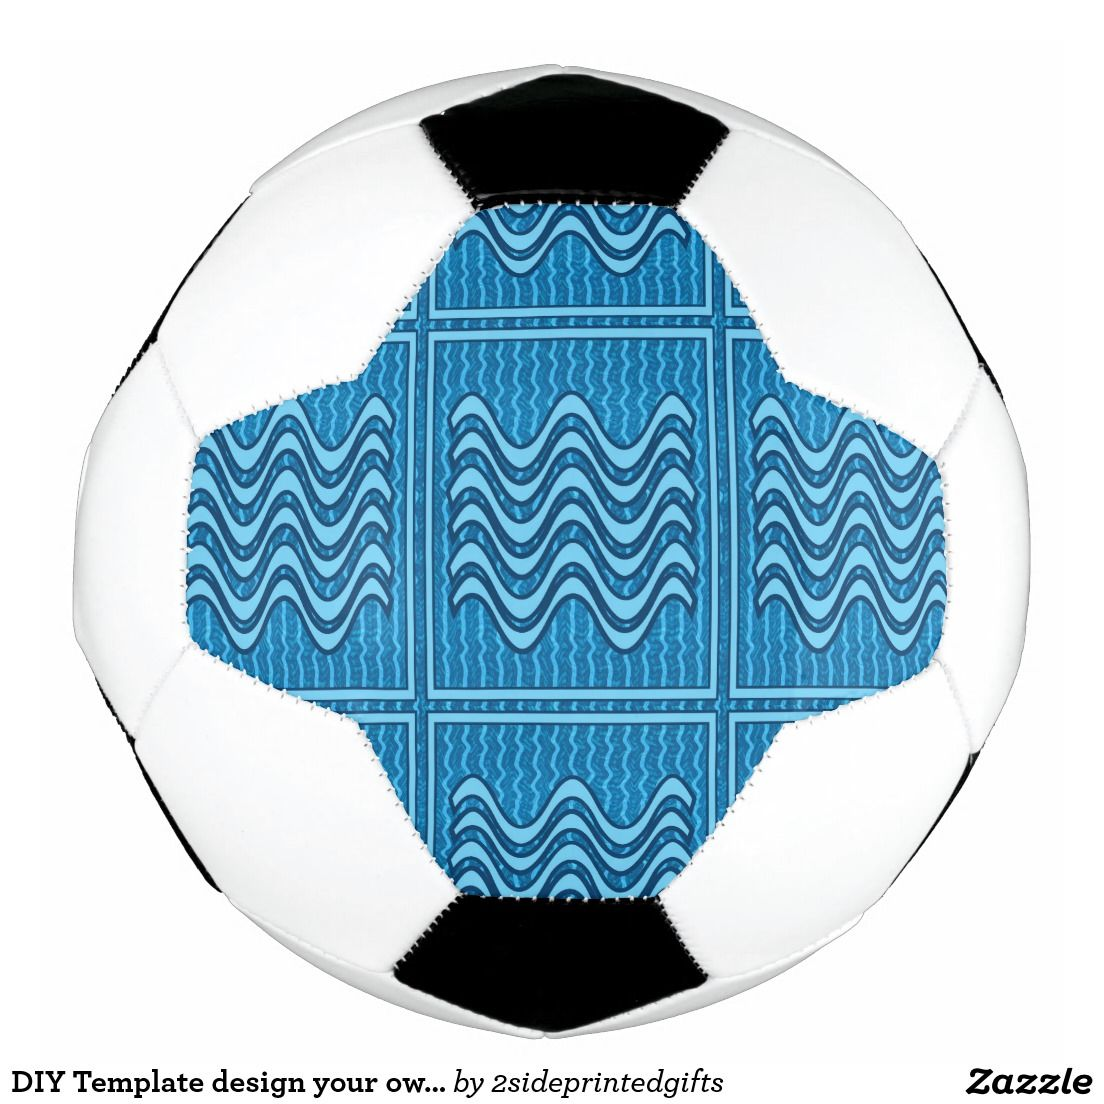 DIY Template design your own SOCCER BALL | Soccer ball and Template